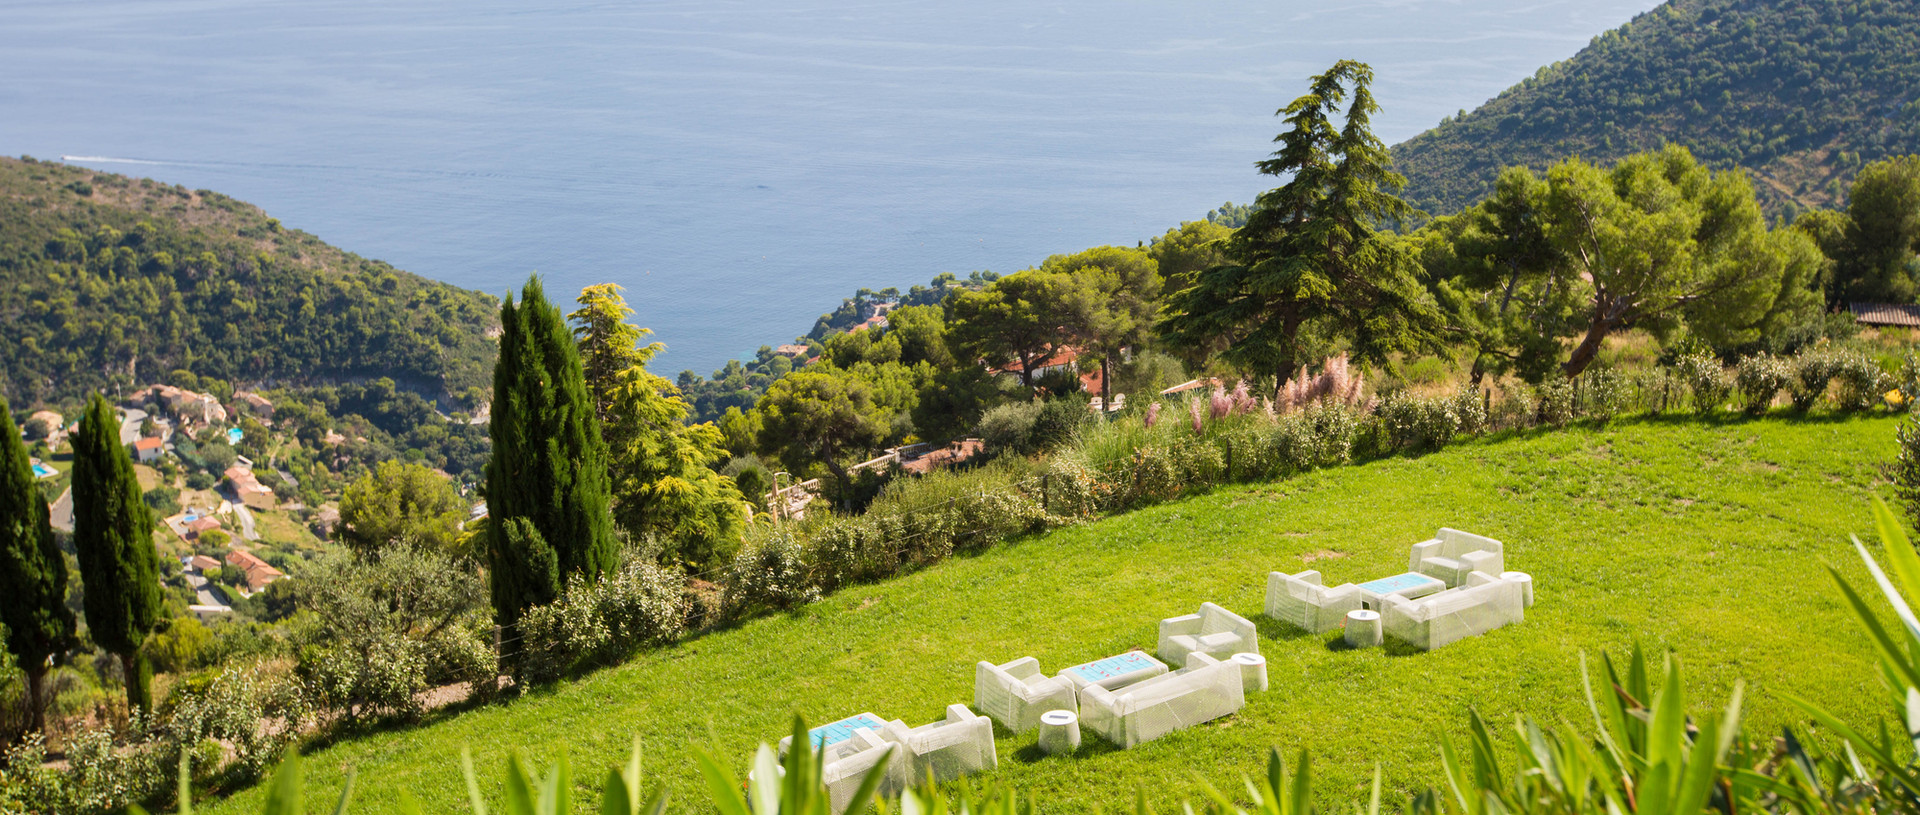 Luxury Wedding Venue on the Cote d'Azur